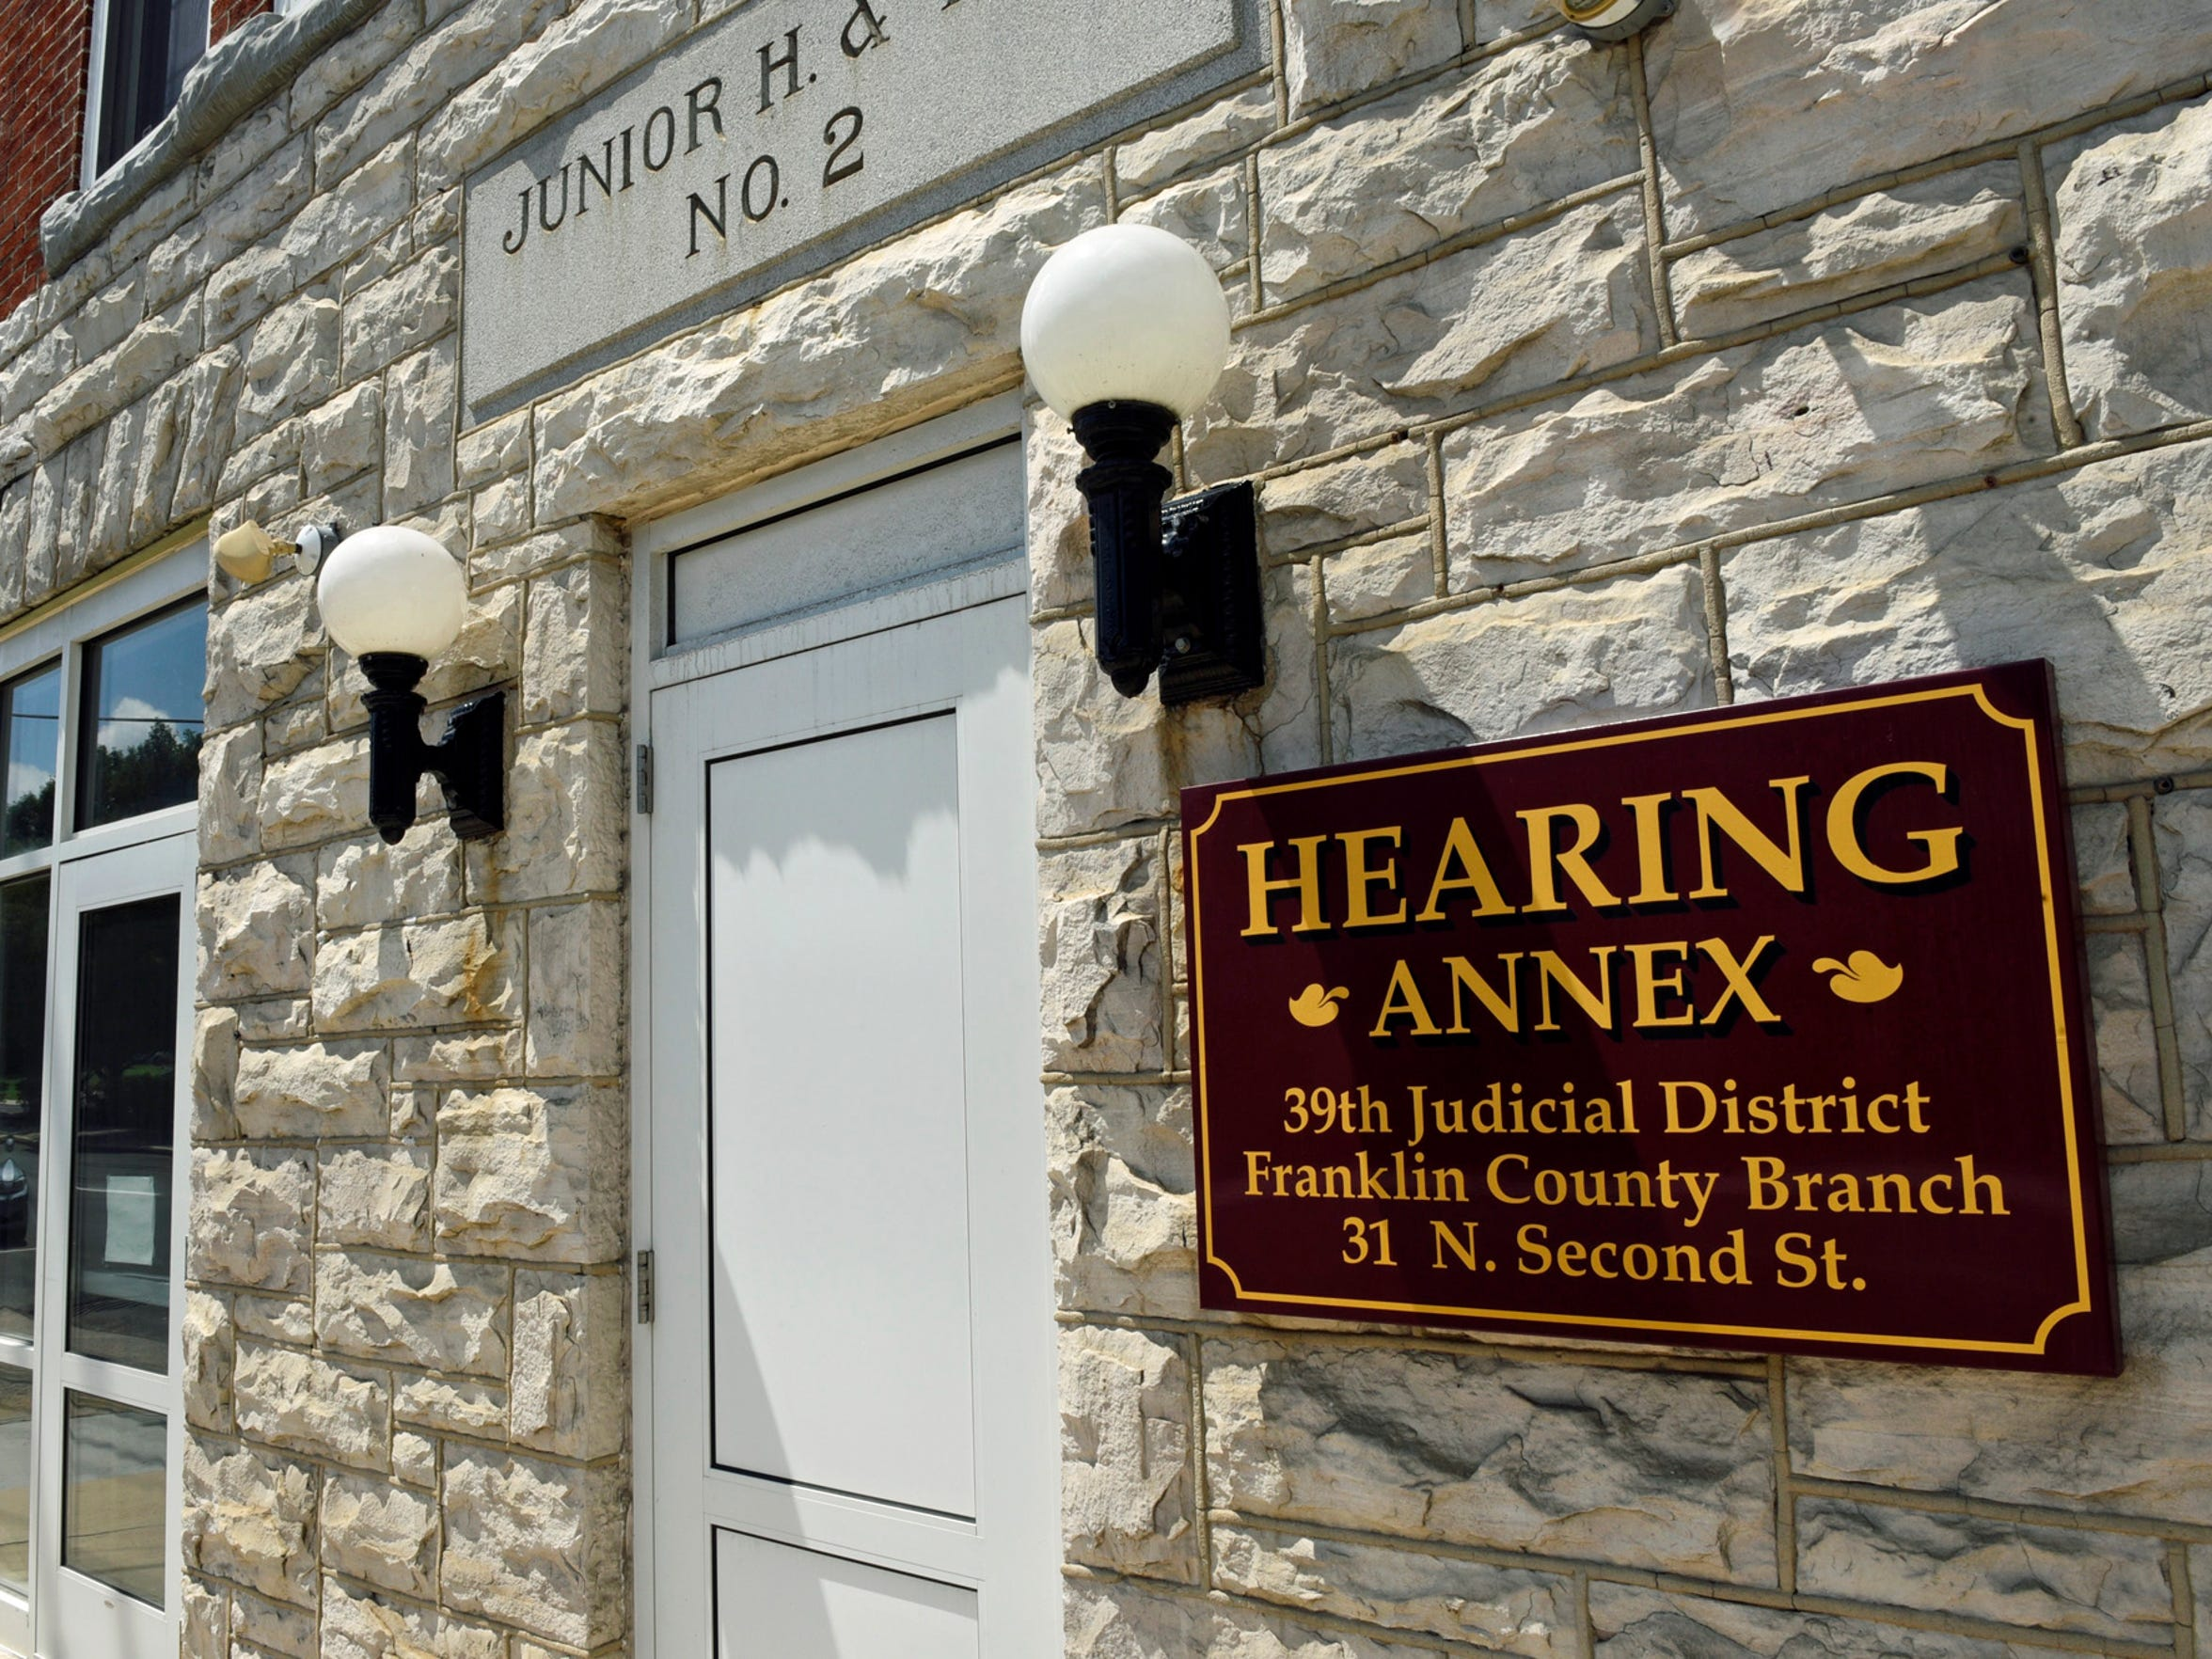 The Hearing Annex, one of the newest buildings in the county court system, is located at 31 N. Second St., Chambersburg. It is where most witness/victim meetings are held and the site of some juvenile court proceedings.